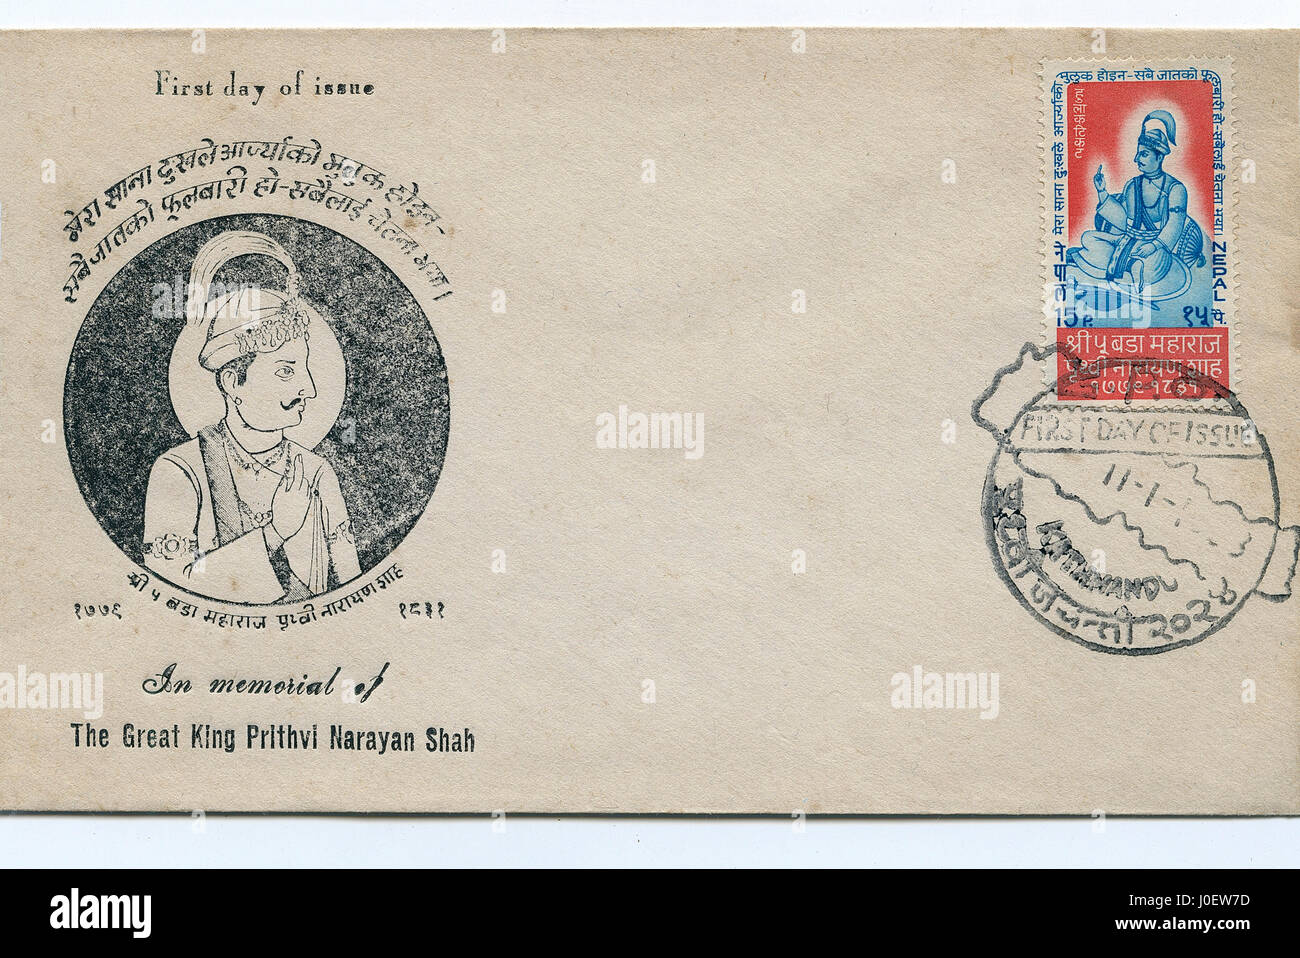 First day of issue great king prithvi narayan shah nepal, postage stamps, india, asia - Stock Image